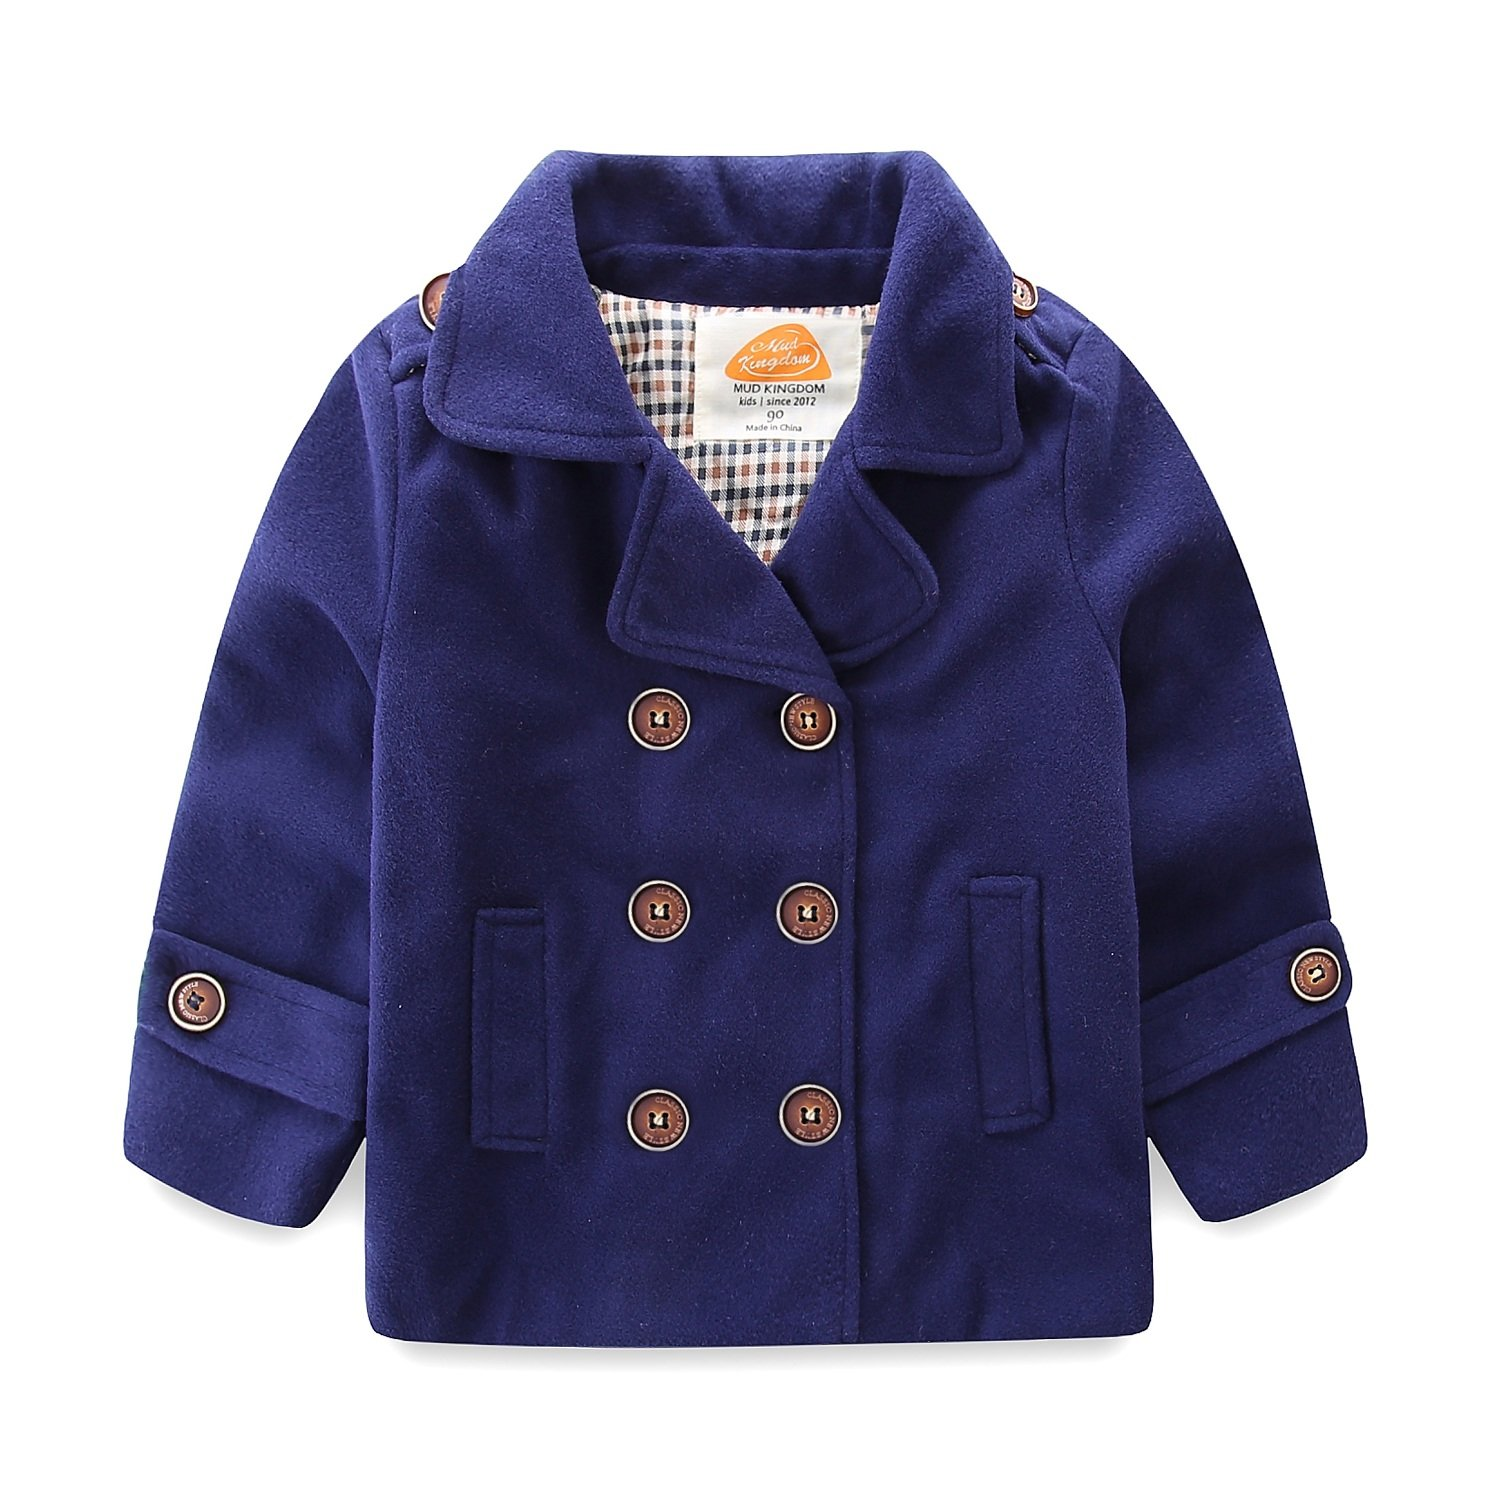 Mud Kingdom Little Boy Bomber Jacket Plain Faux Wool Coat 4T Navy